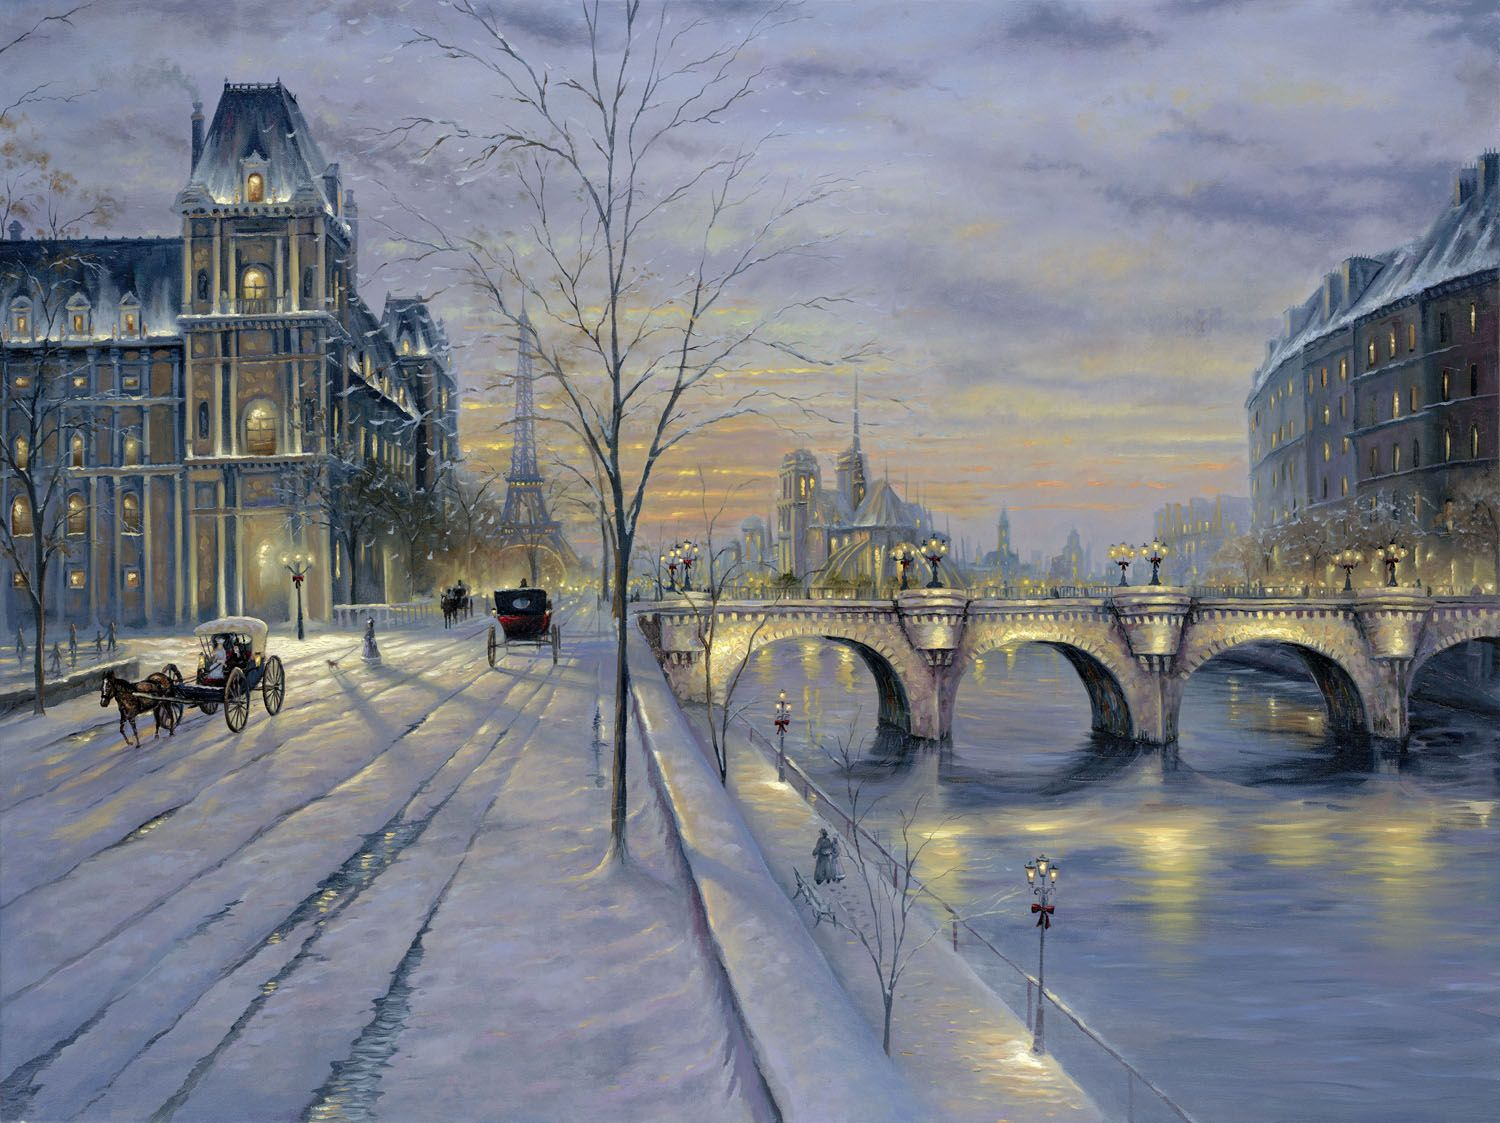 Find Best Value And Selection For Your Snow Forest Castle Decoration Oil Painting Art Hd Printing On Canvas 24 32 Winter Painting Winter Landscape Paris Winter